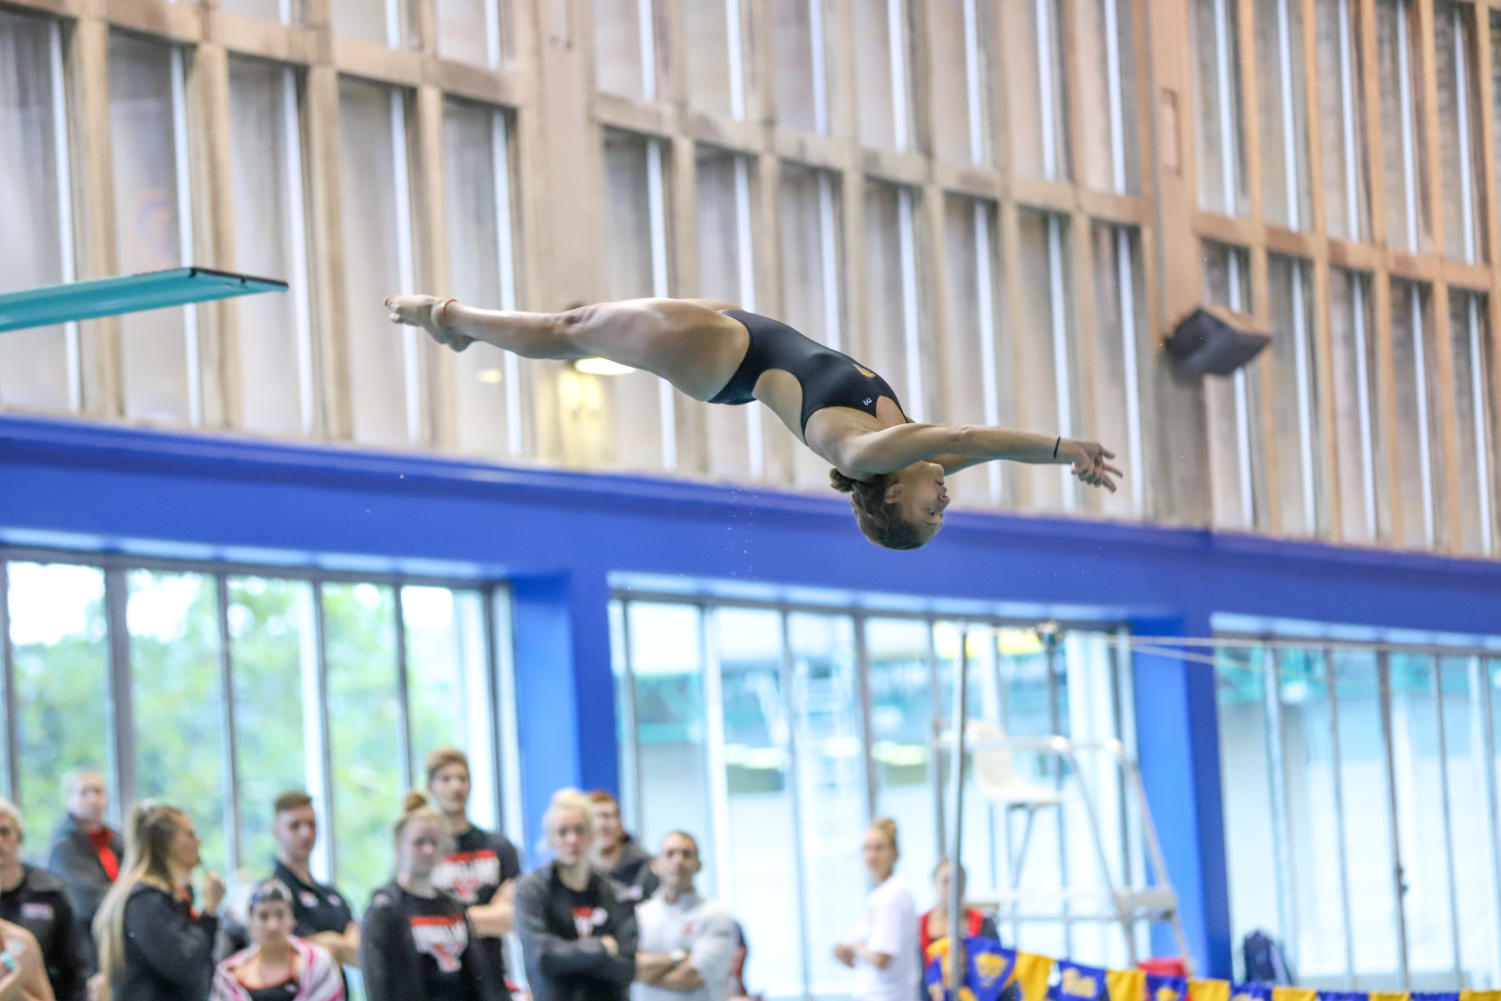 Pitt swept all four diving events on Saturday at a quad meet against Duquesne, Villanova and Youngstown State at home.